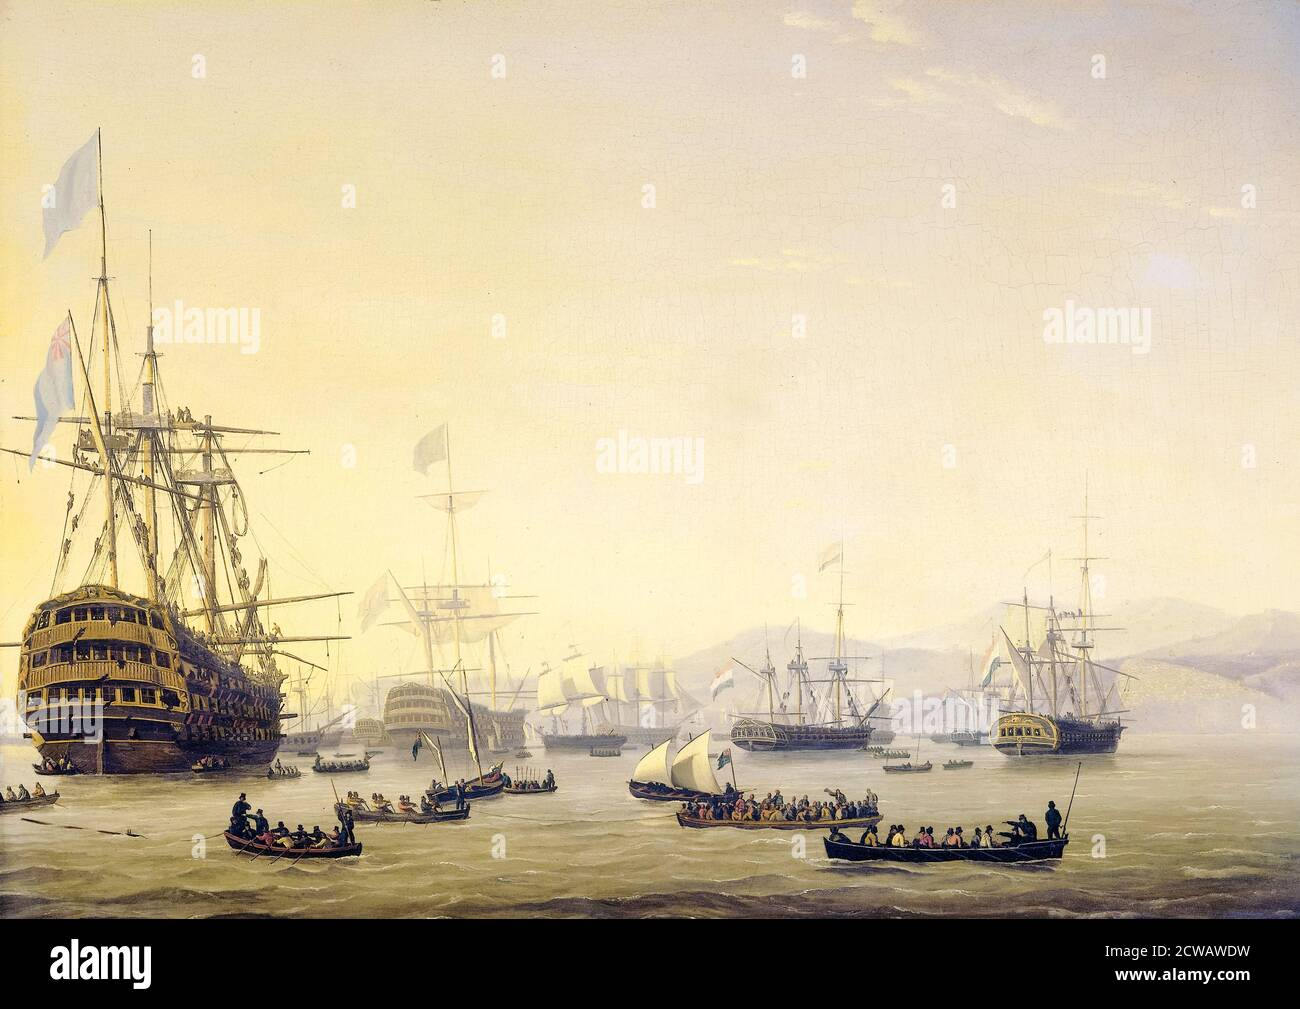 Council of War on board HMS Queen Charlotte commanded by Lord Exmouth prior to the Bombardment of Algiers on the 26th August 1816, painting by Nicolaas Baur, 1818 Stock Photo